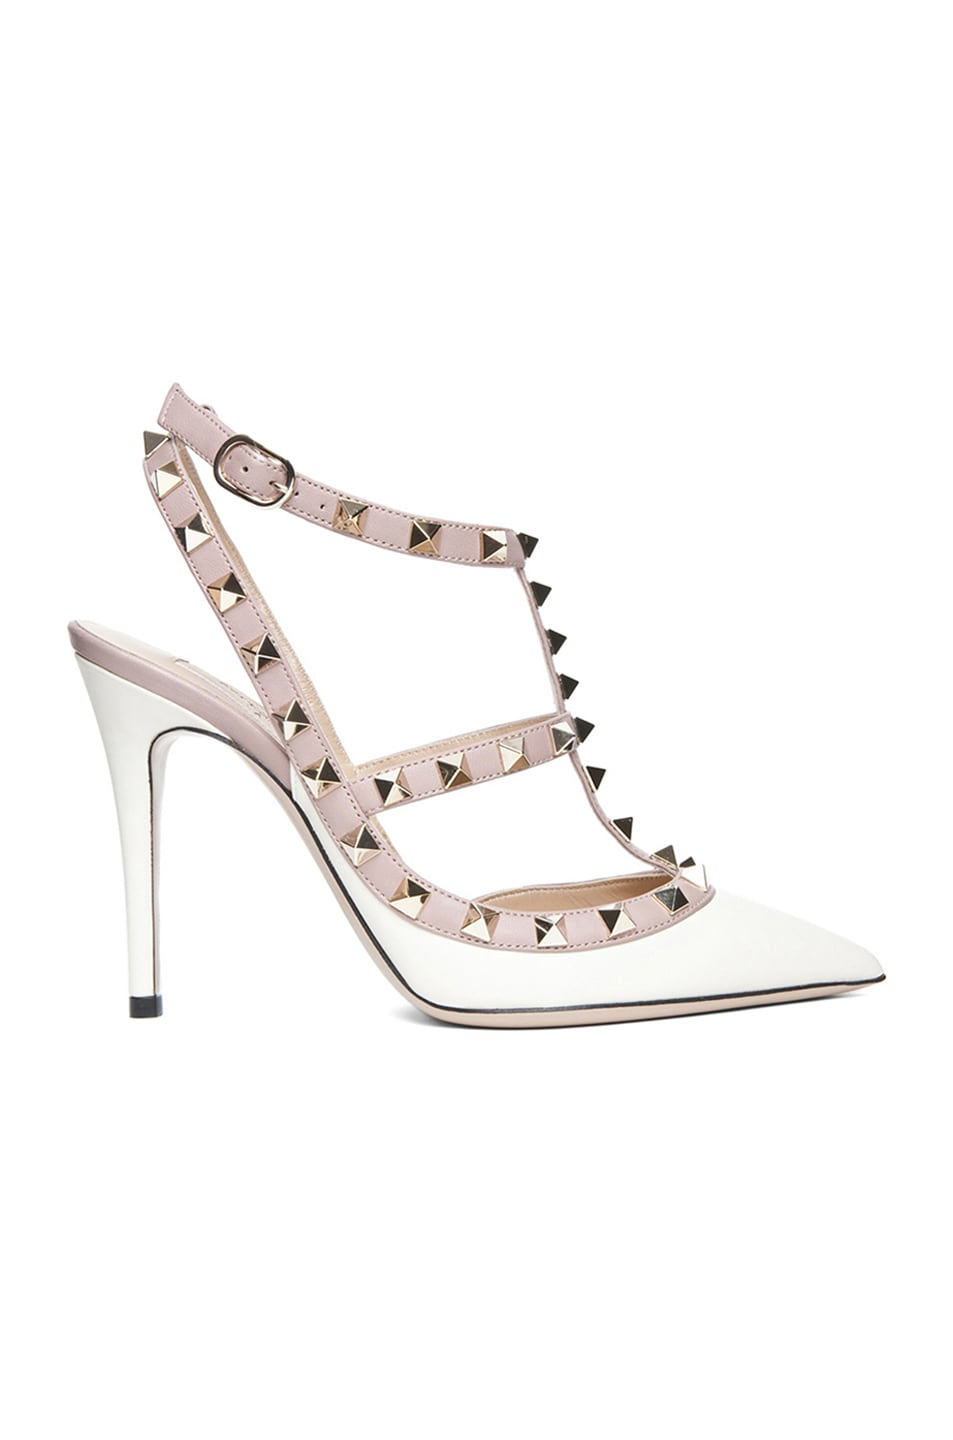 Image 1 of Valentino Rockstud Leather Slingbacks T.100 in Light Ivory